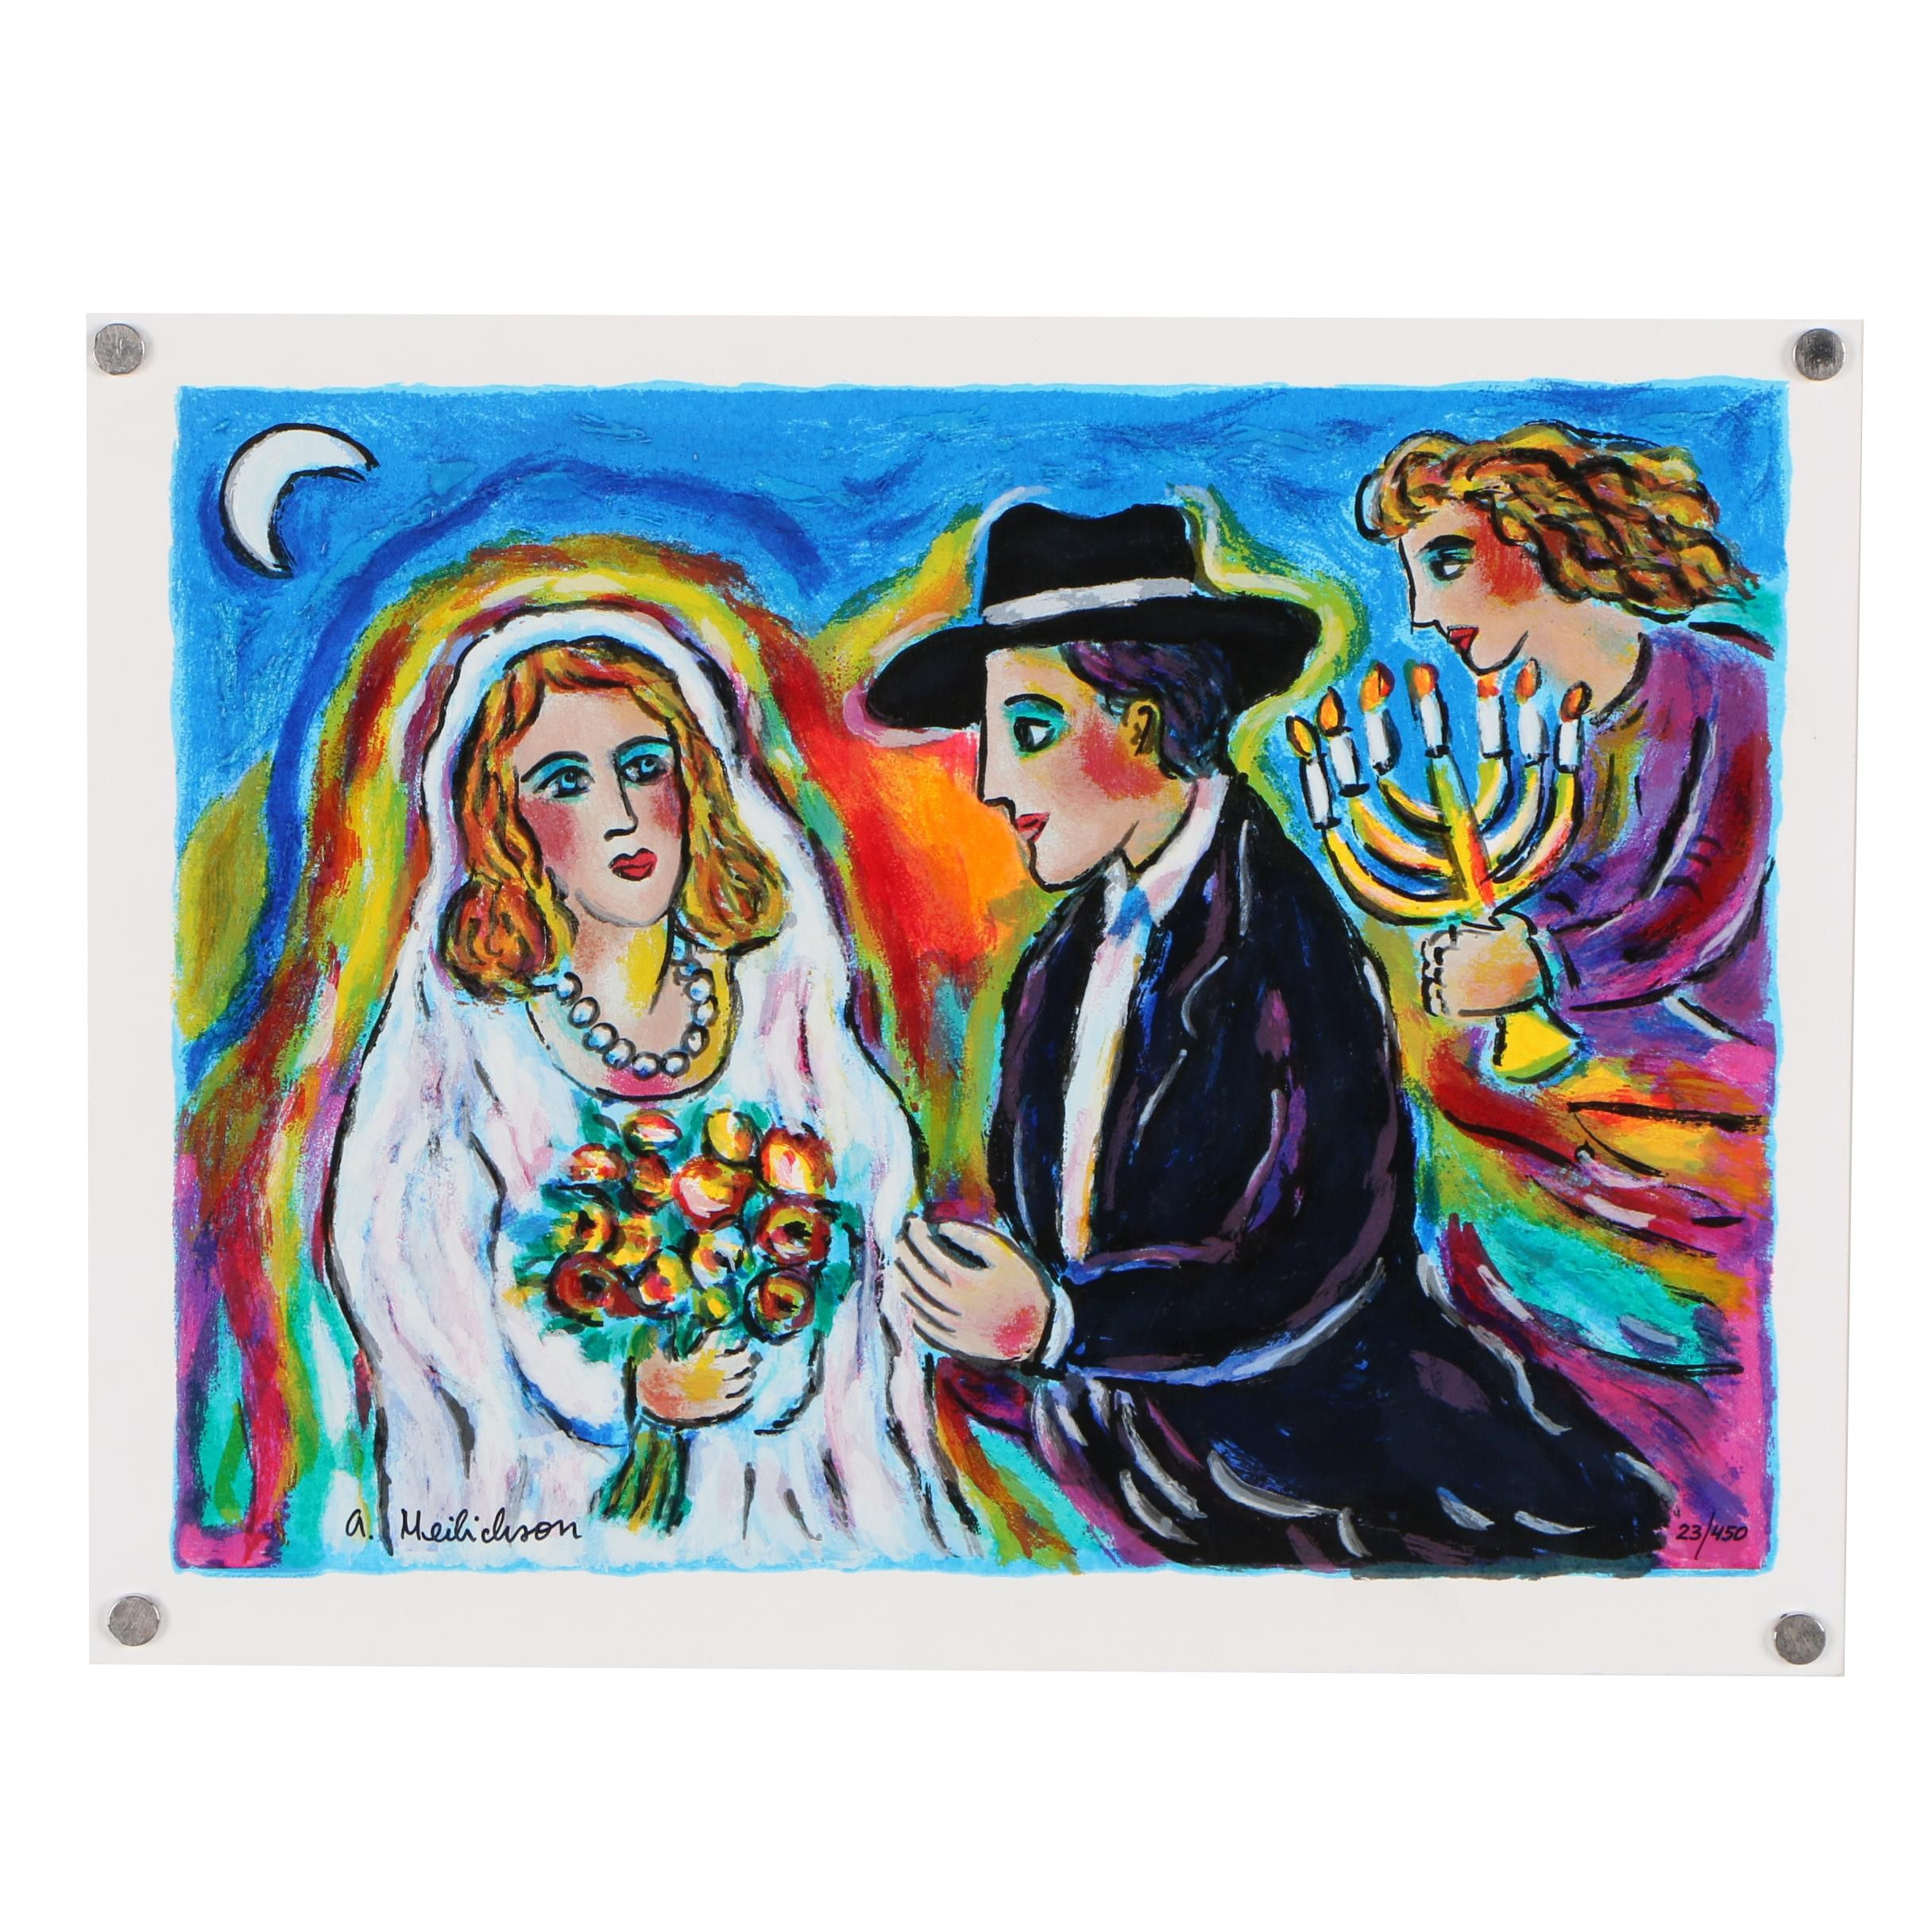 Alex Meilichson Limited Edition Serigraph